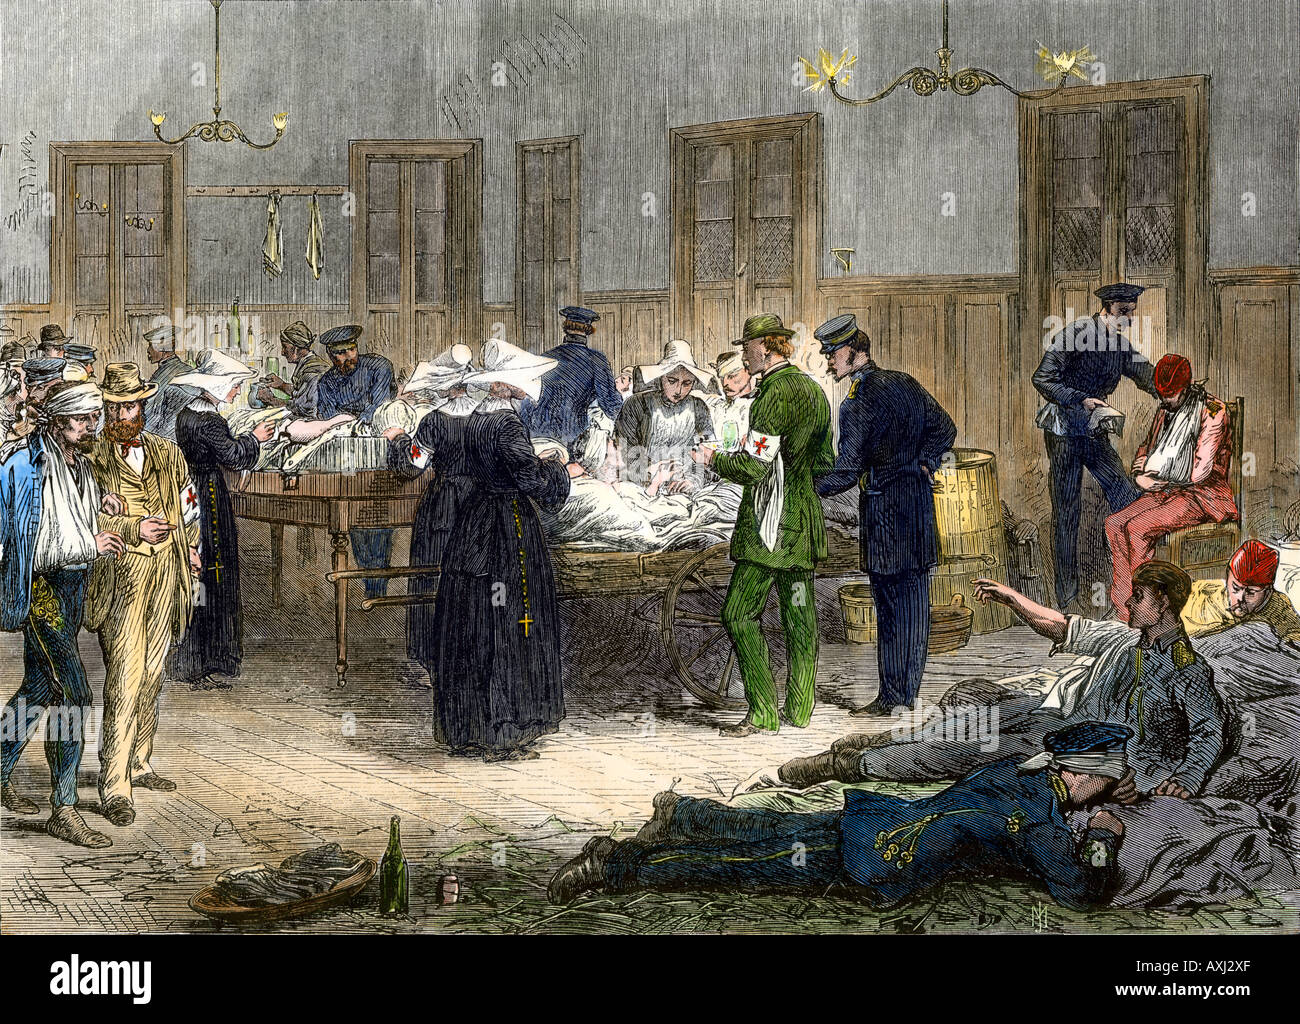 Red Cross field hospital set up in a railway station in Bohemia during wars of Frederick II of Prussia 1866. Hand-colored woodcut - Stock Image